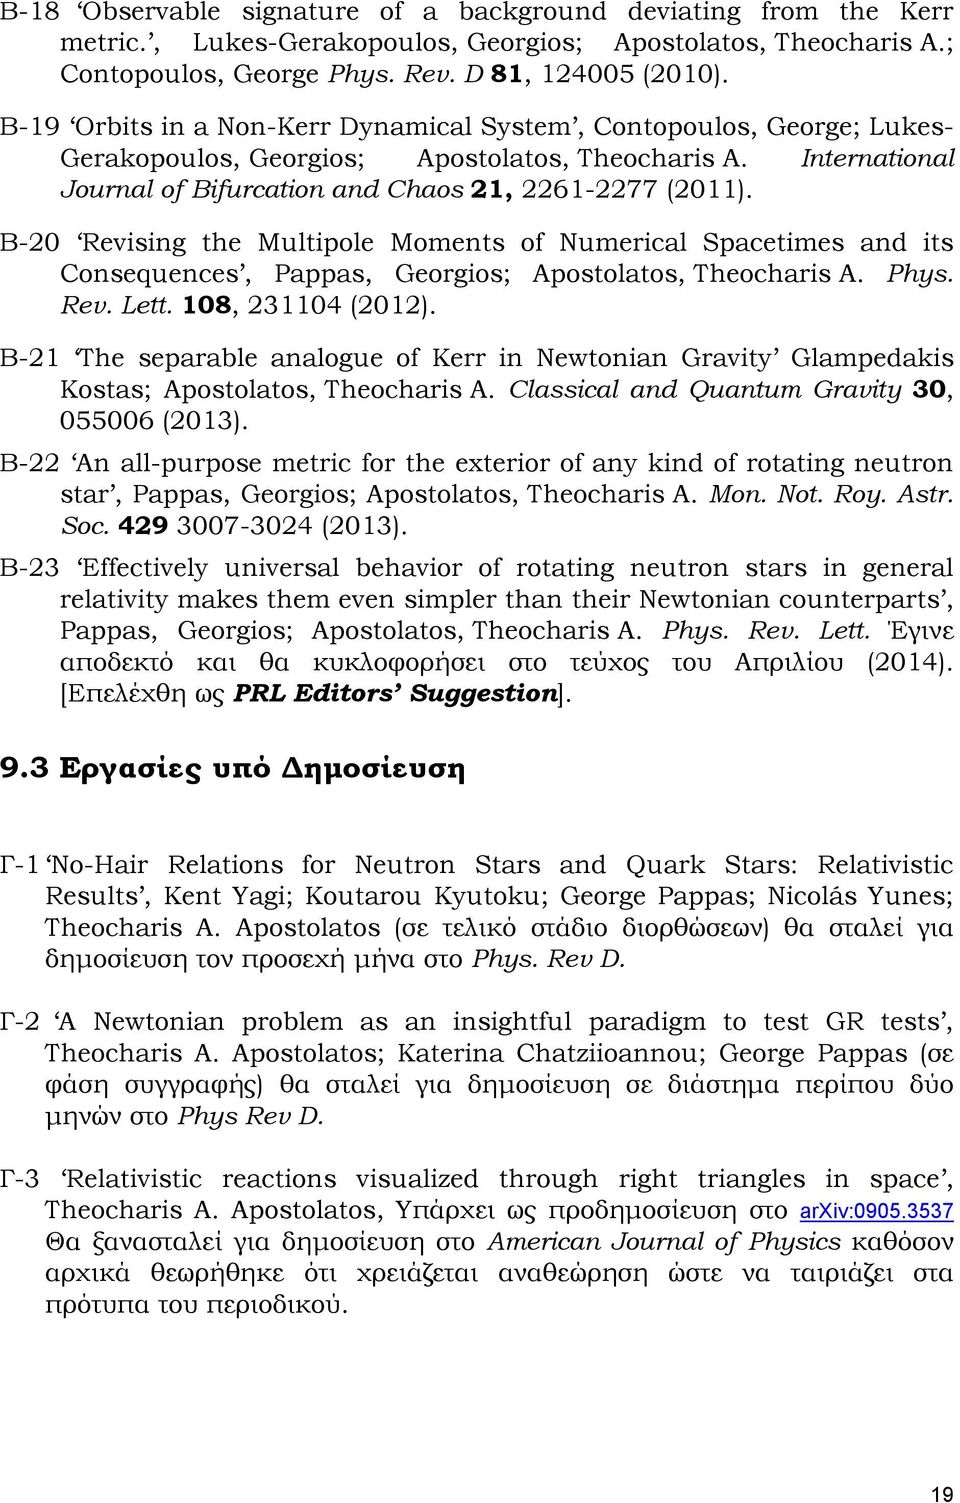 B-20 Revising the Multipole Moments of Numerical Spacetimes and its Consequences, Pappas, Georgios; Apostolatos, Theocharis A. Phys. Rev. Lett. 108, 231104 (2012).